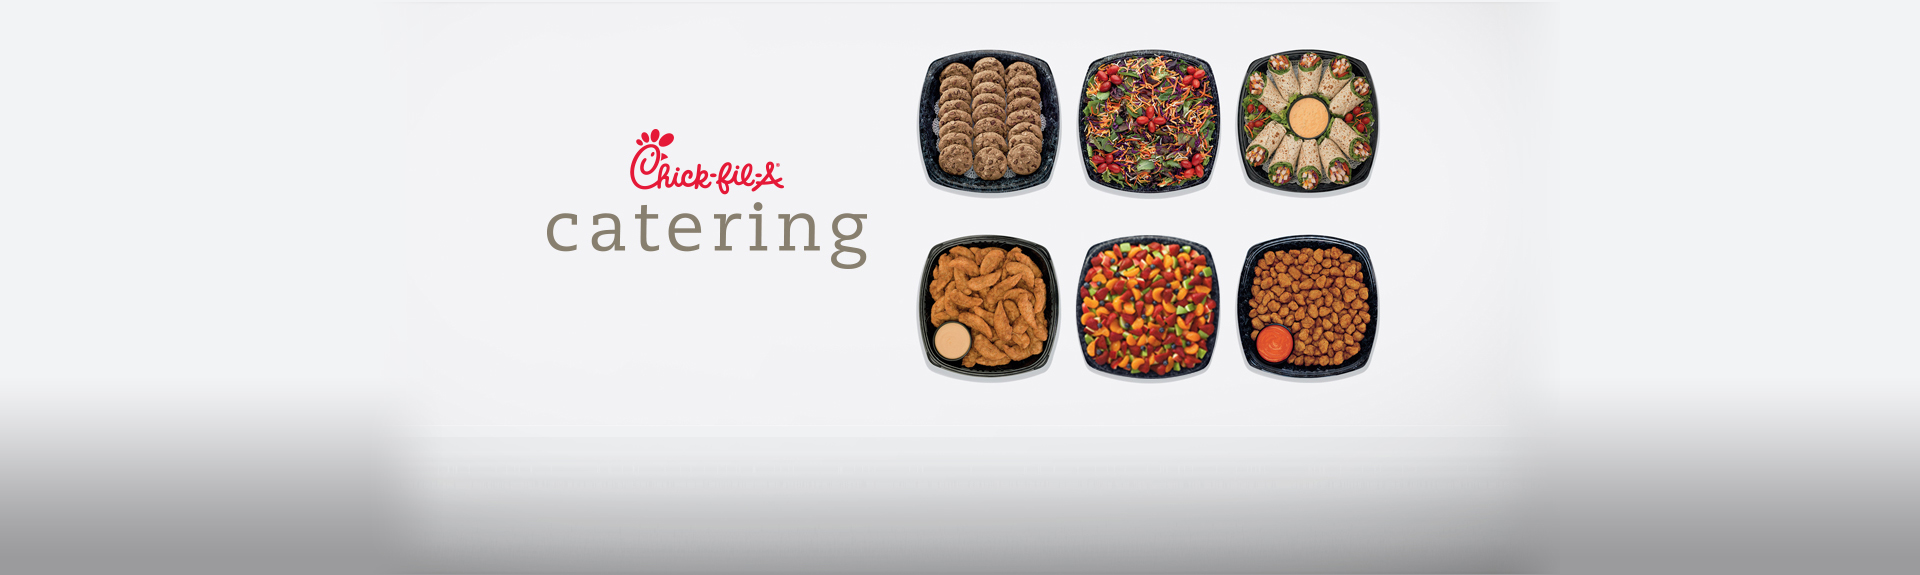 Chick-fil-A Catering